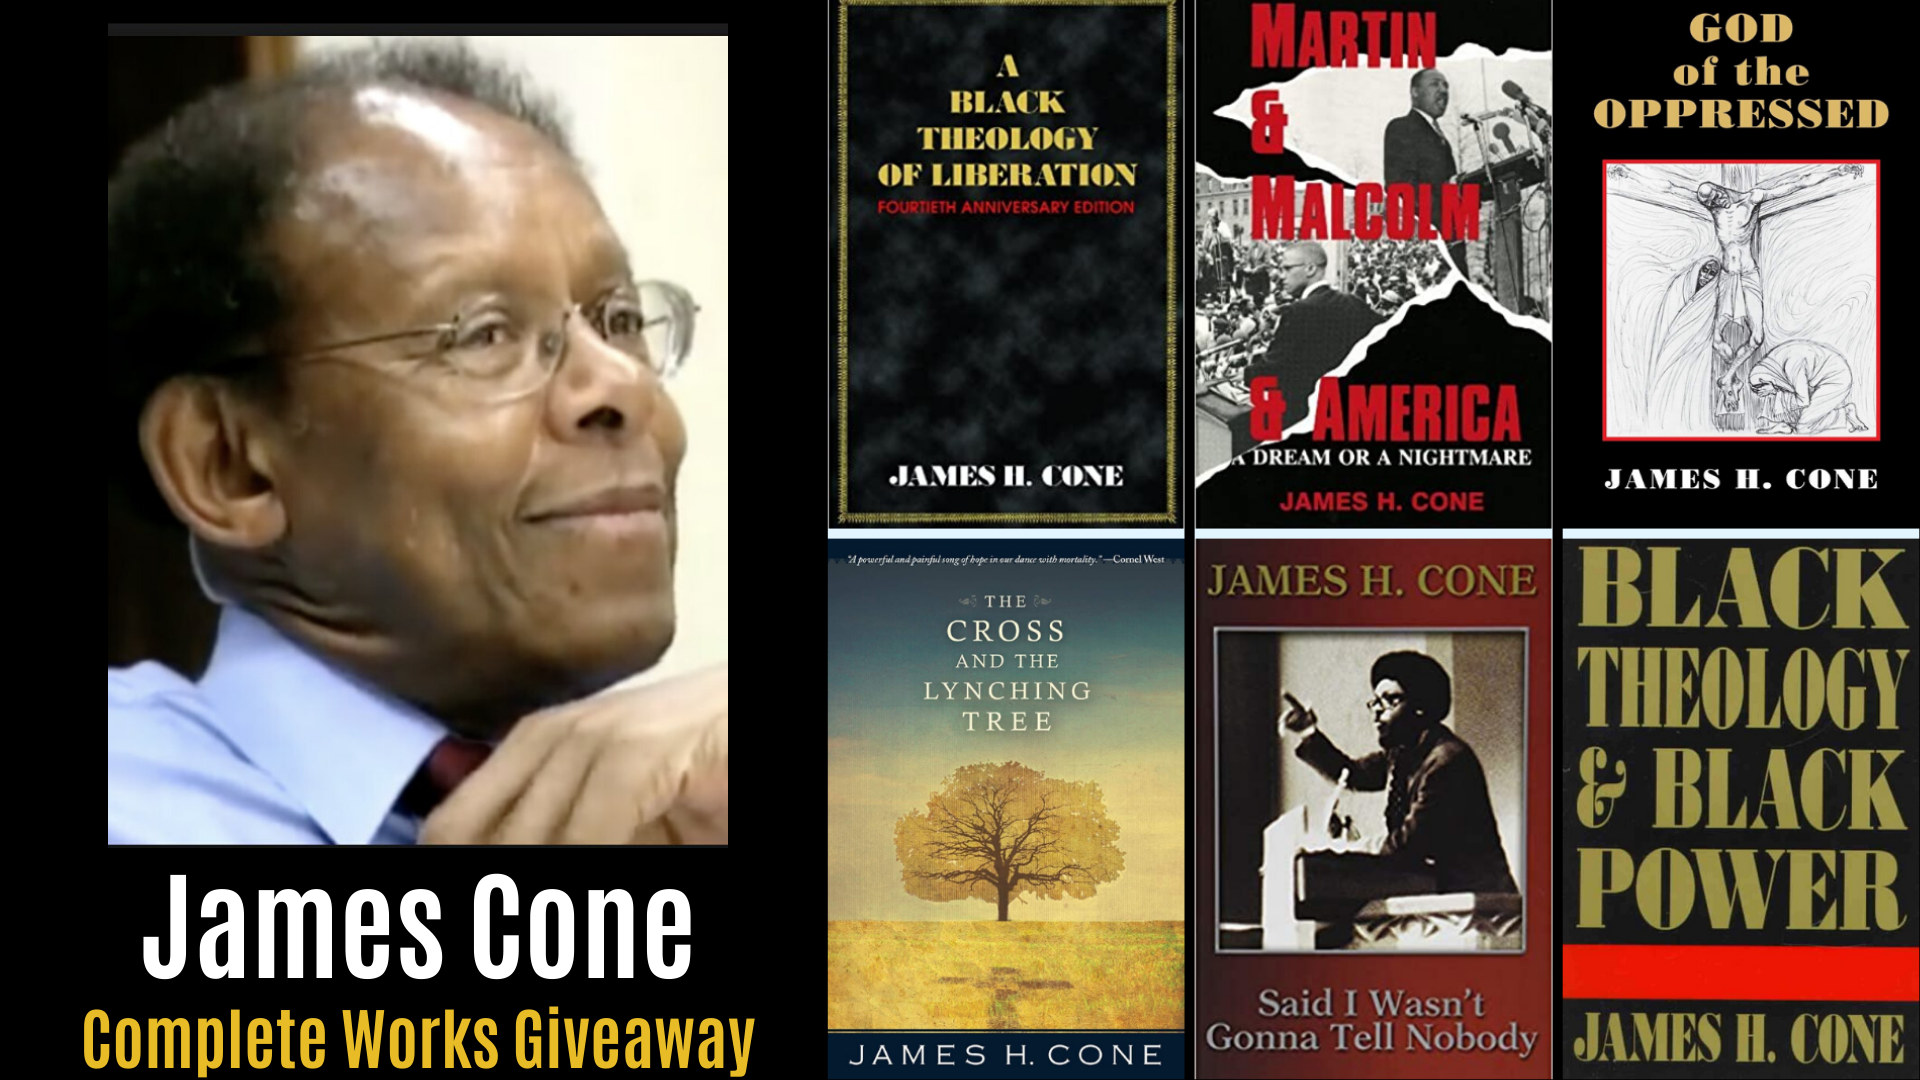 James Cone was Right! Complete Works Giveaway in 2020